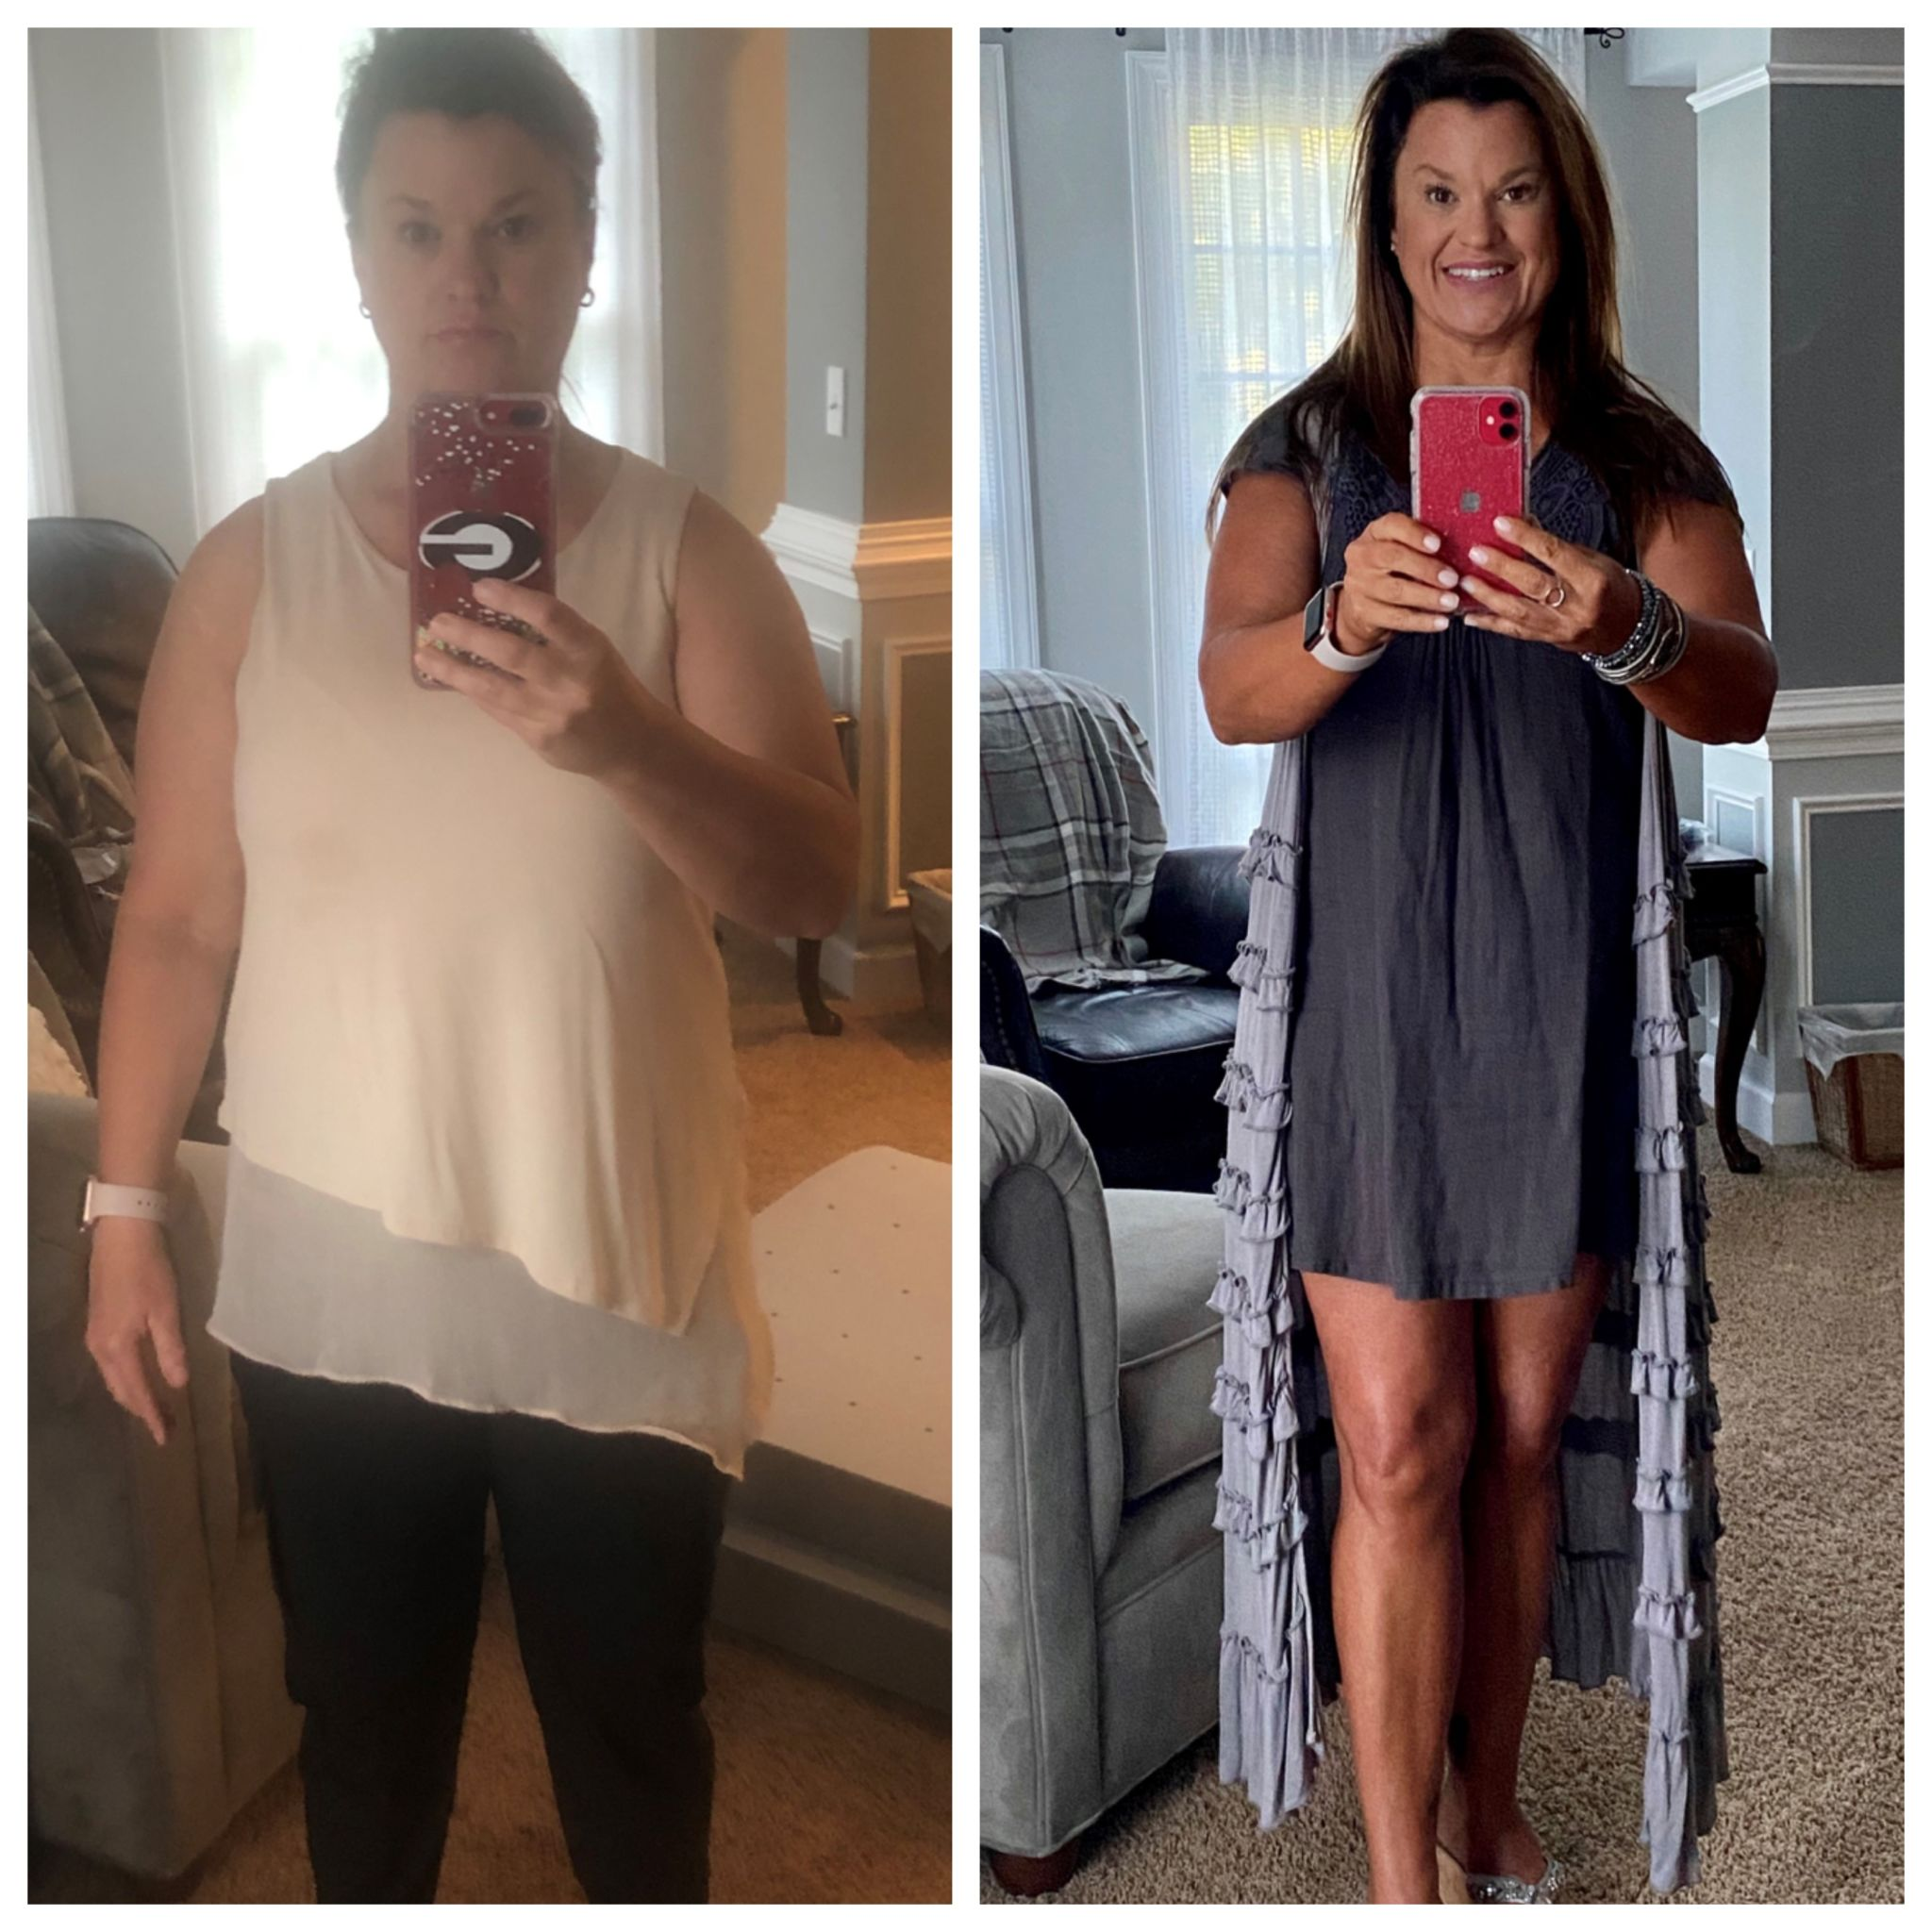 Tammy, before and after